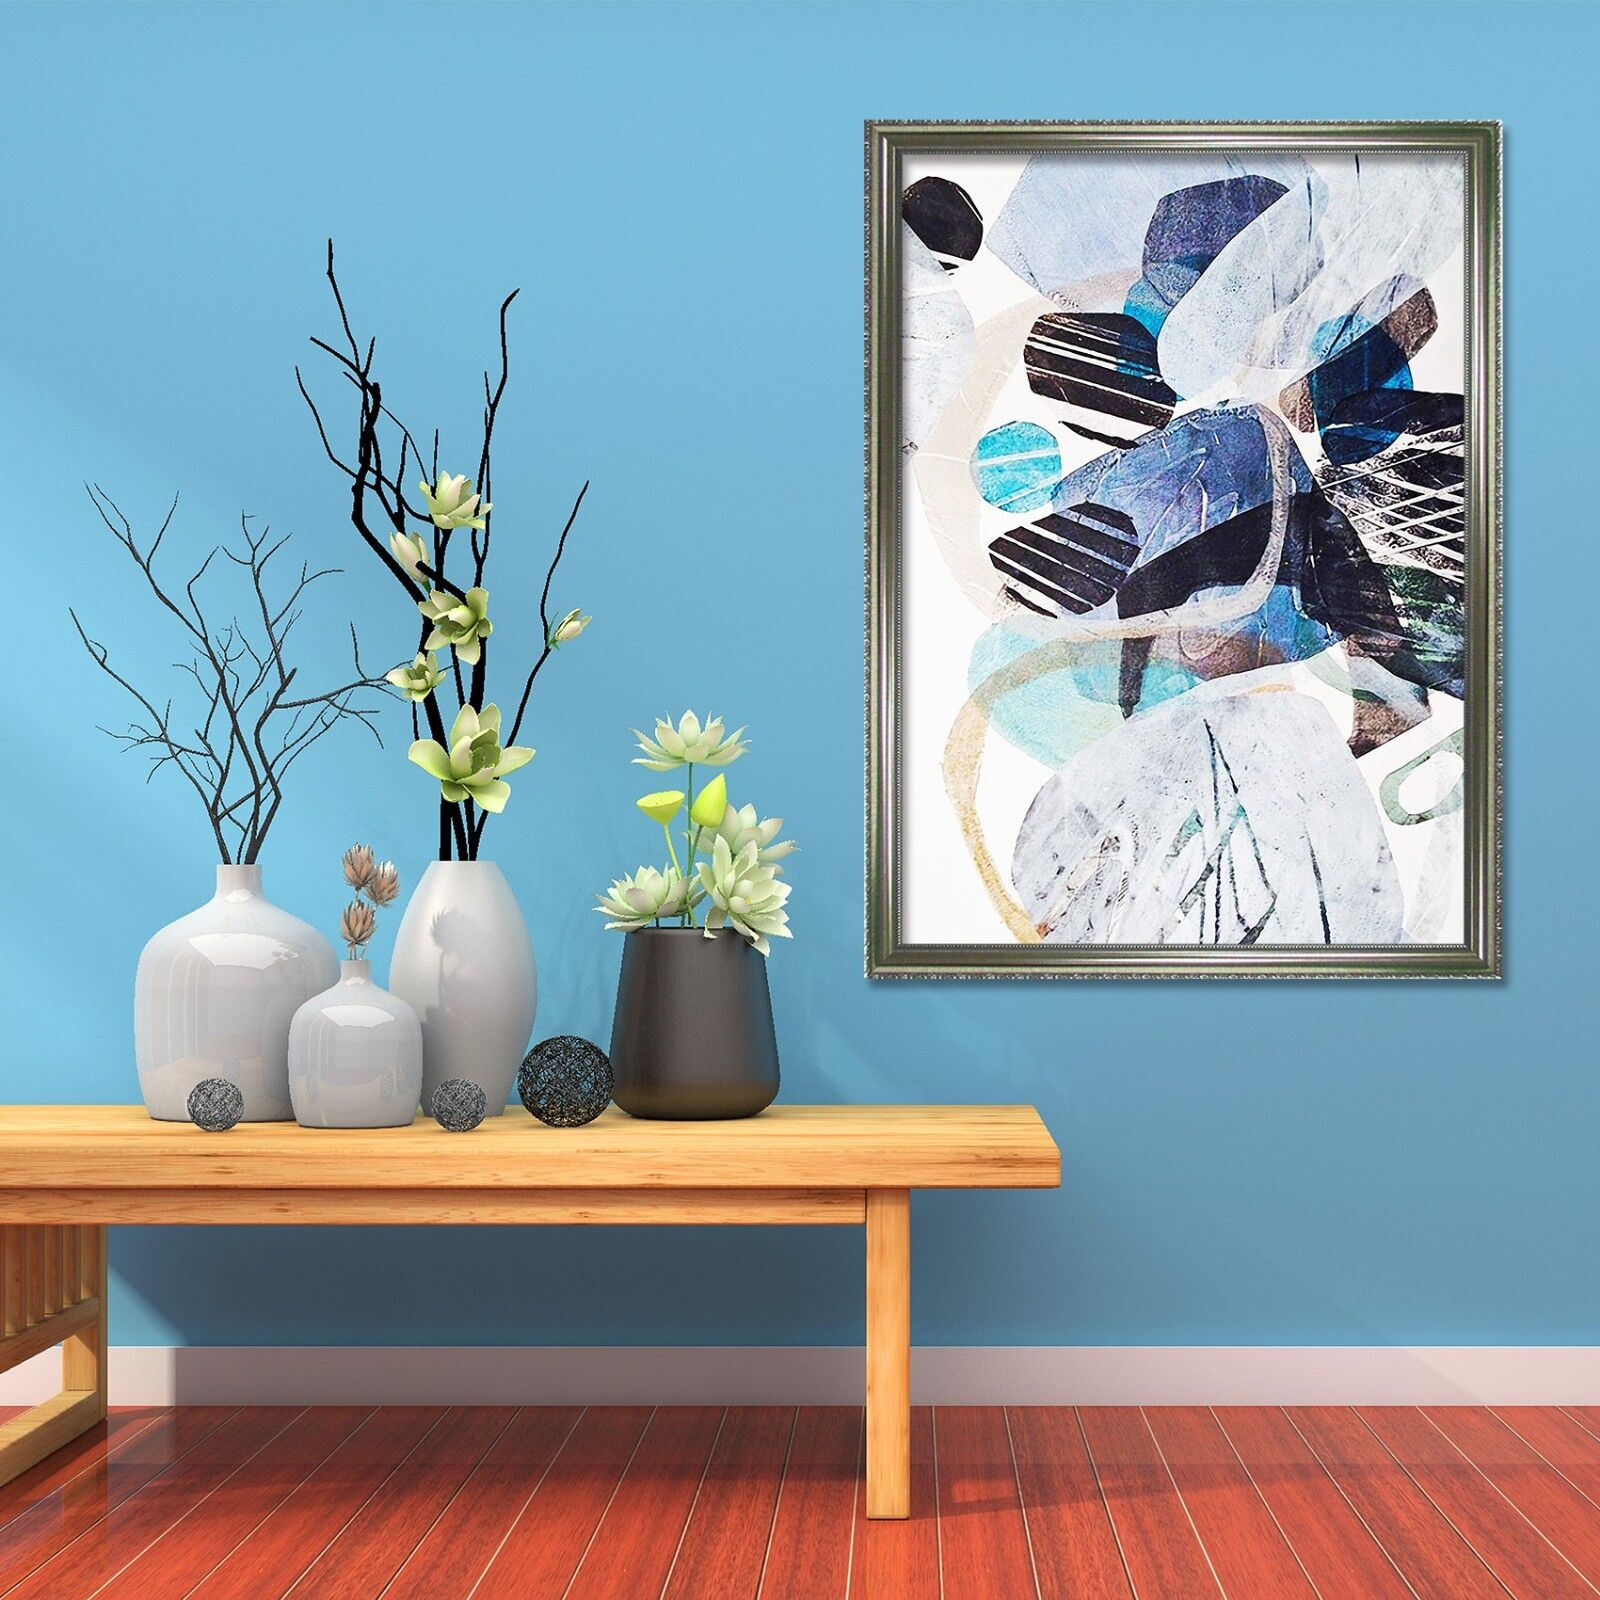 3D bluee Picture 69 Framed Poster Home Decor Print Painting Art AJ UK